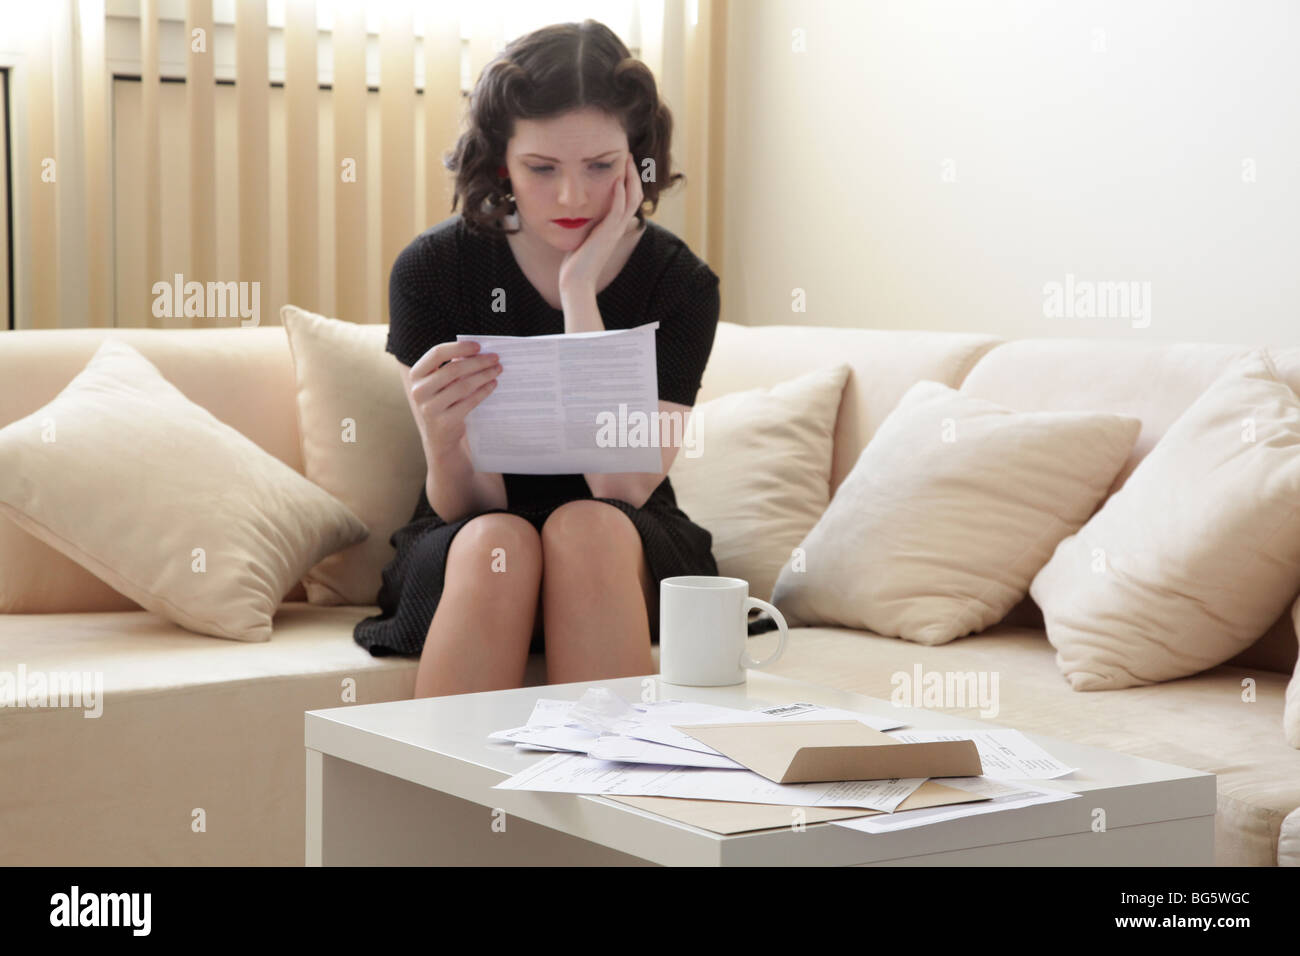 Woman looking stressed reading a bank statement - Stock Image